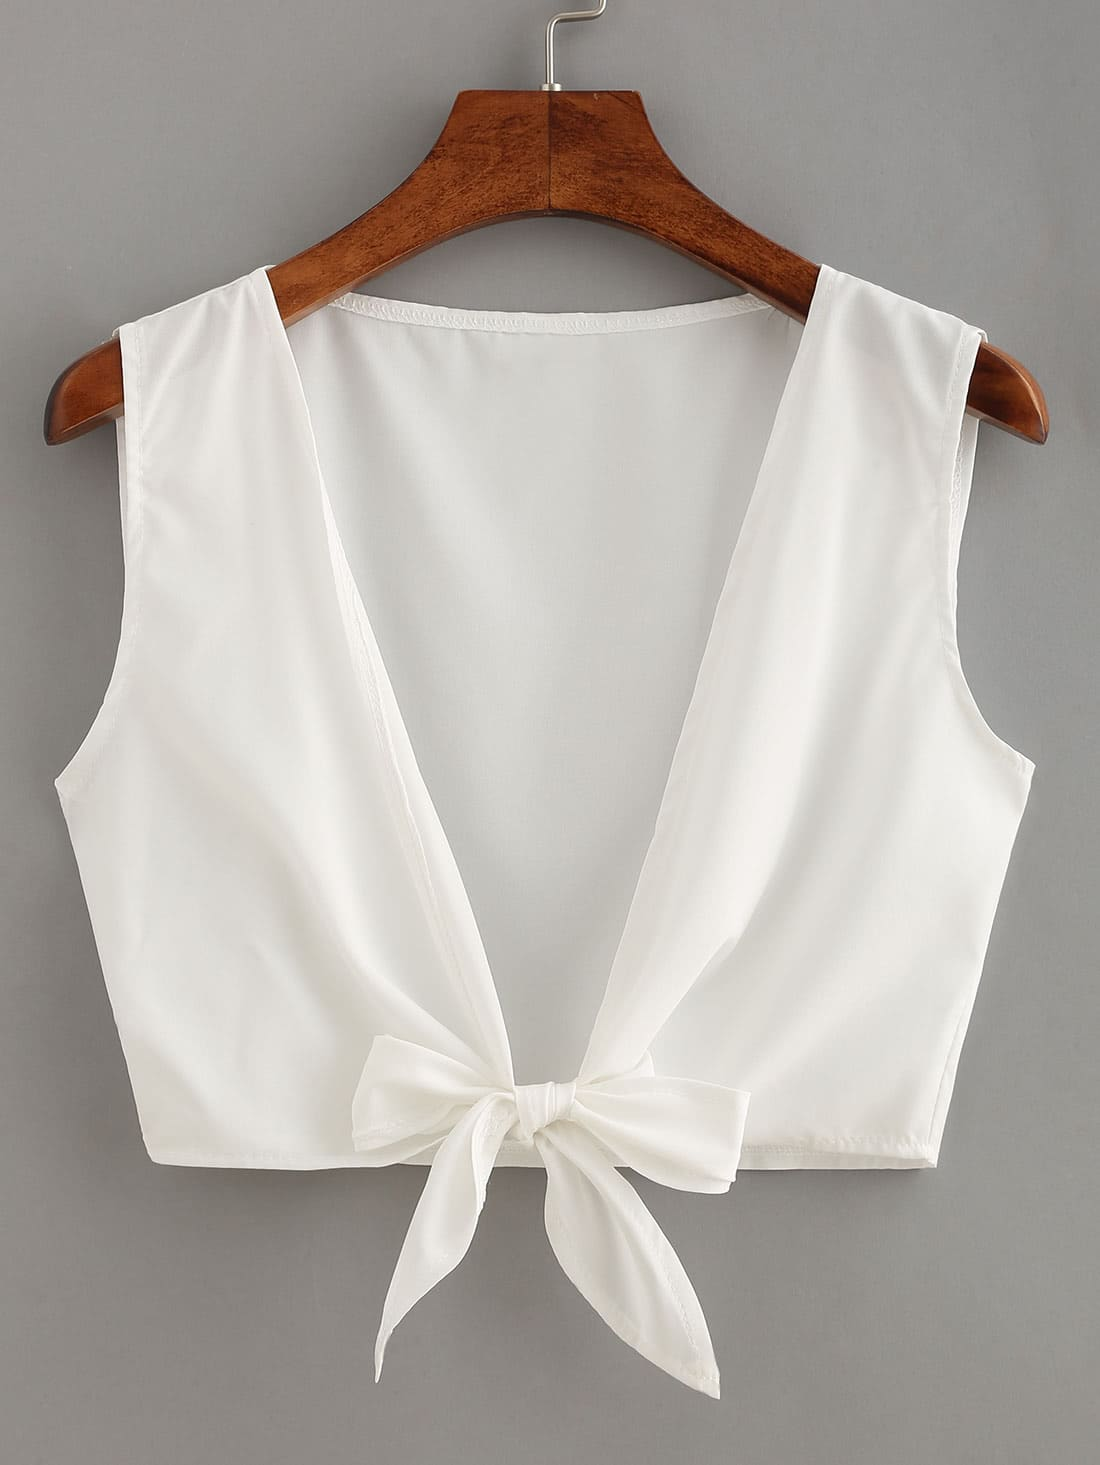 Knot Front Crop Top RVES160504001